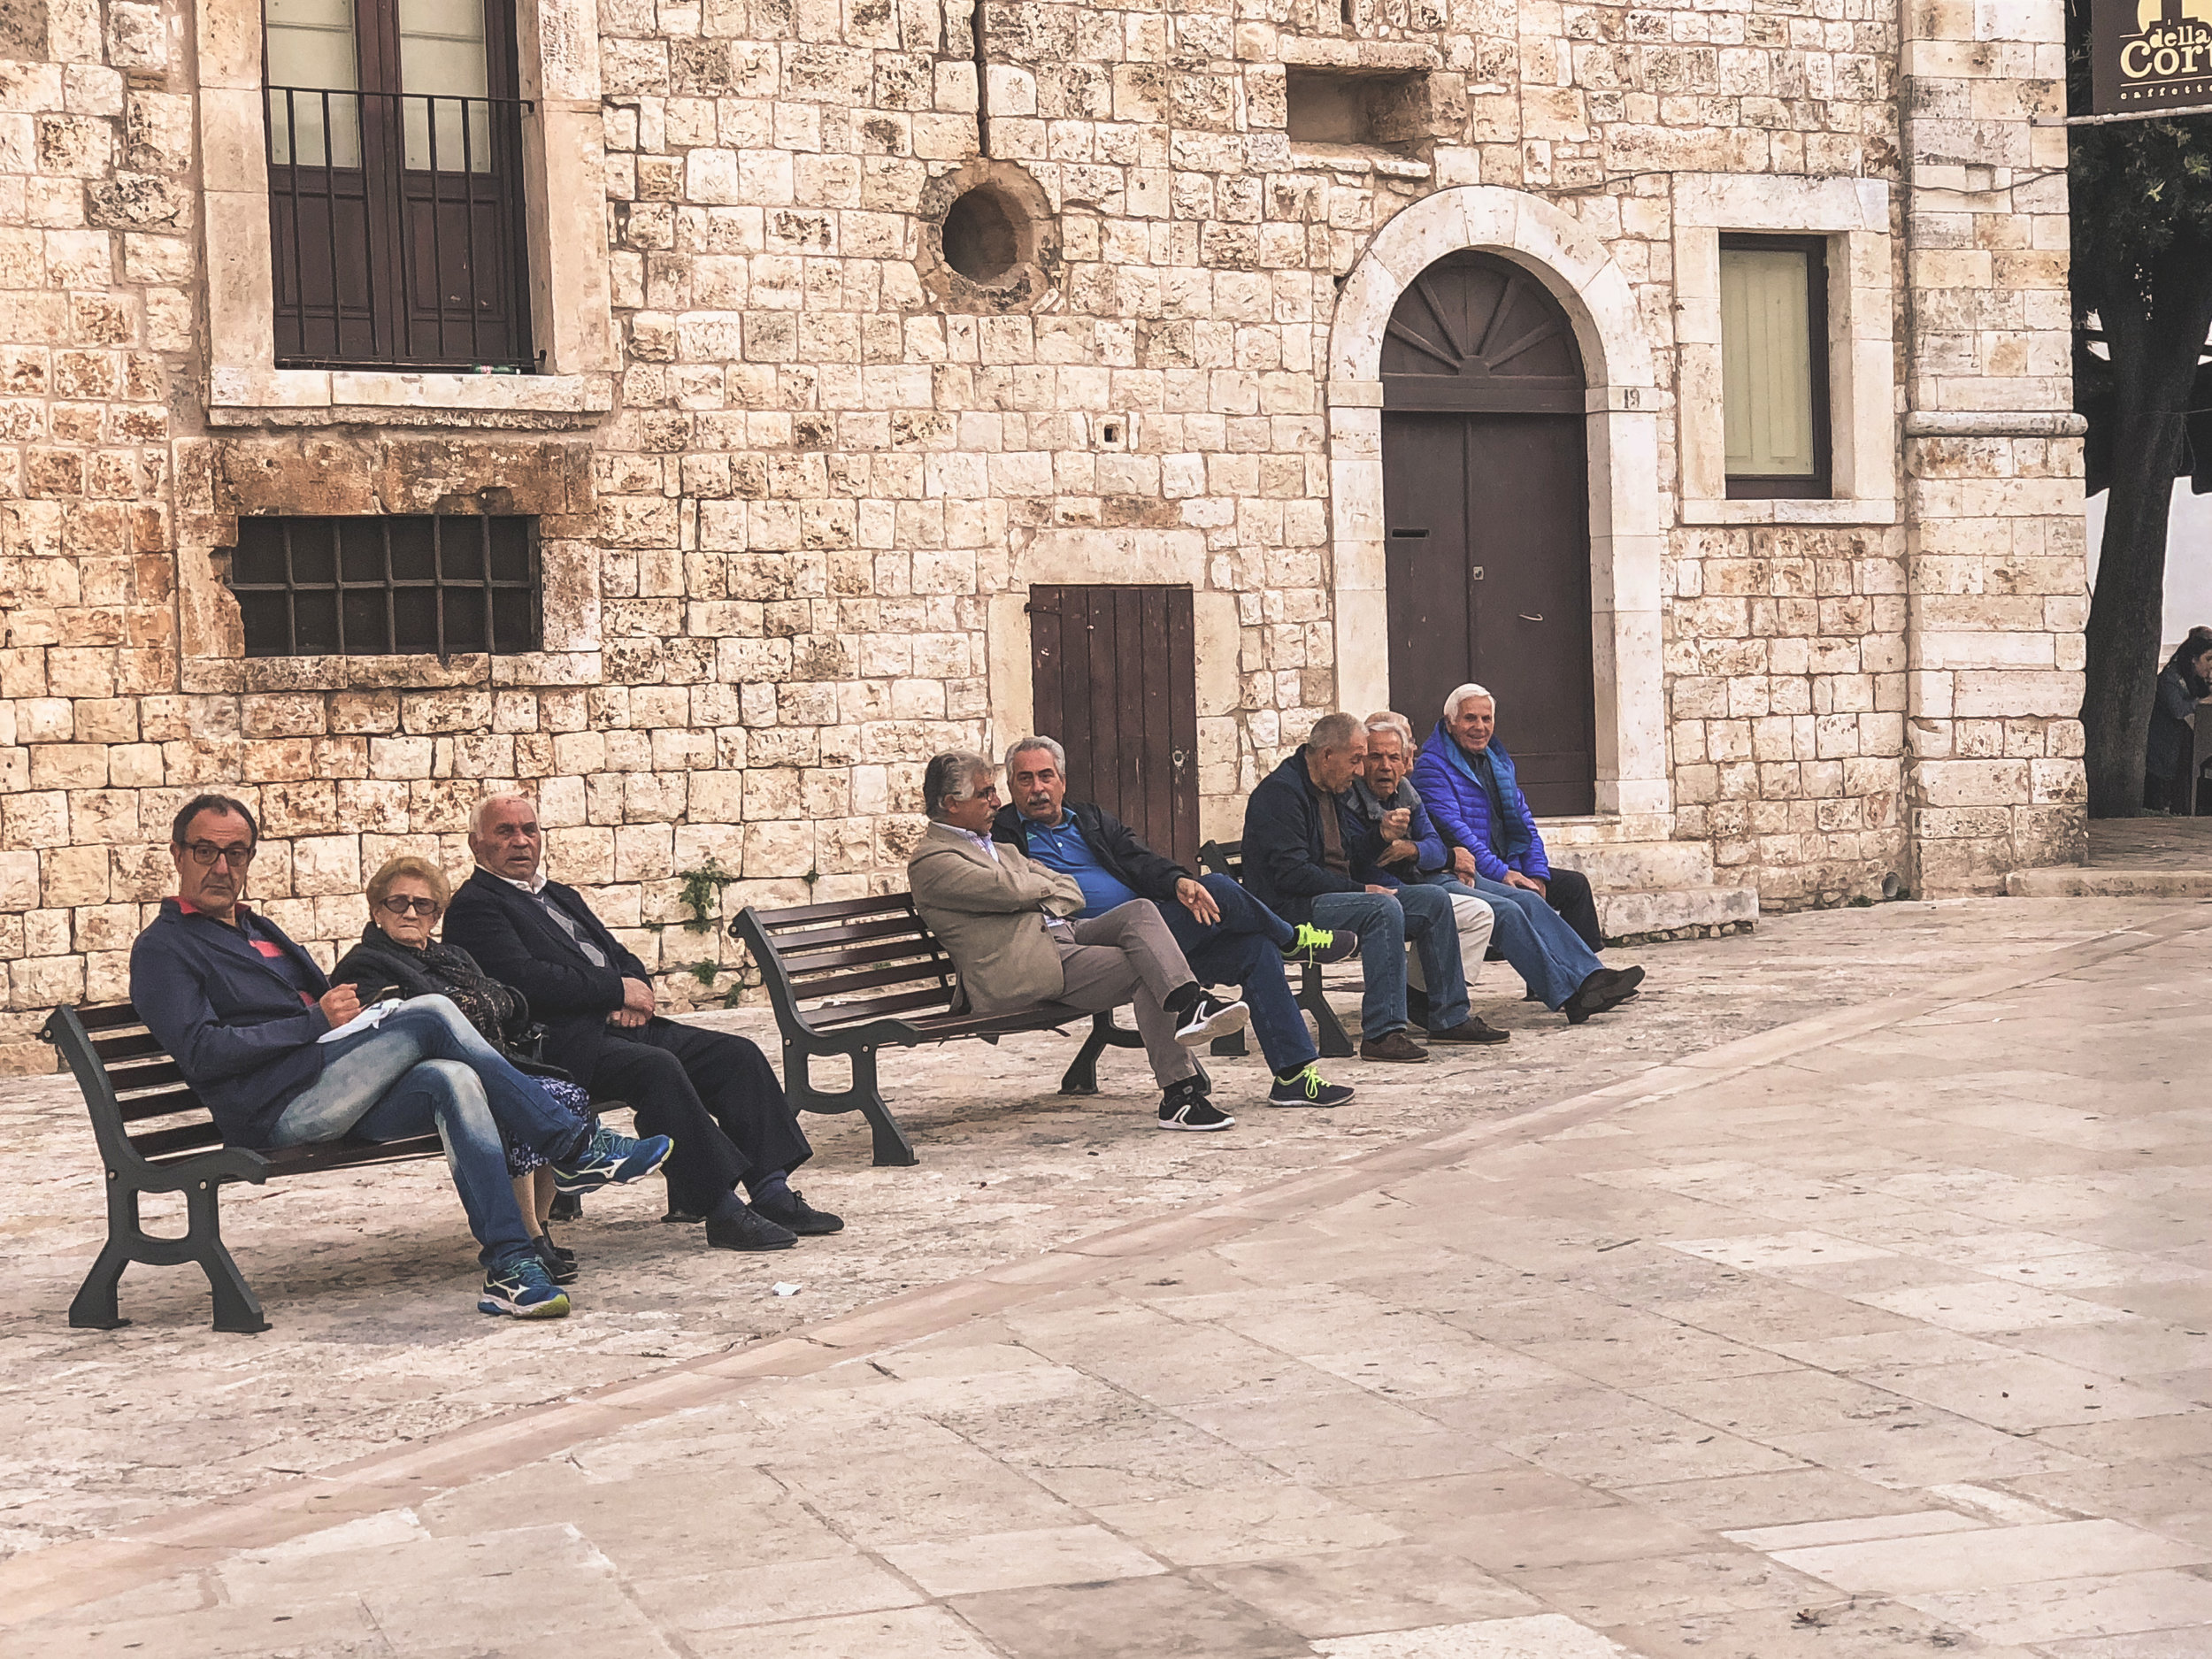 A TYPICAL SCENE IN conversano, puglia